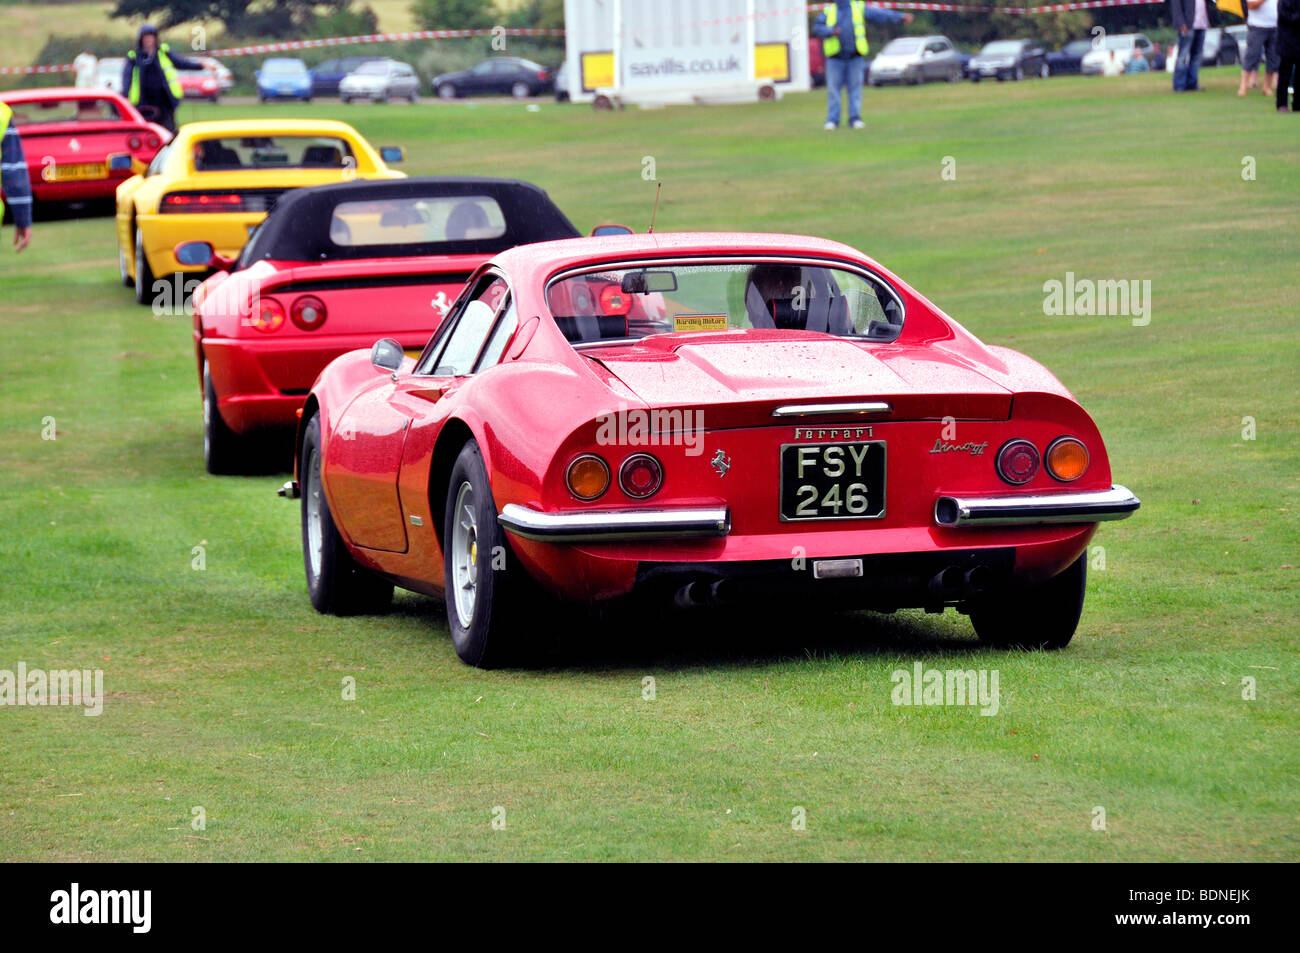 Red Ferrari Dino GT in line with other Ferraris - Harpenden Classics on the Common 2009 - Stock Image